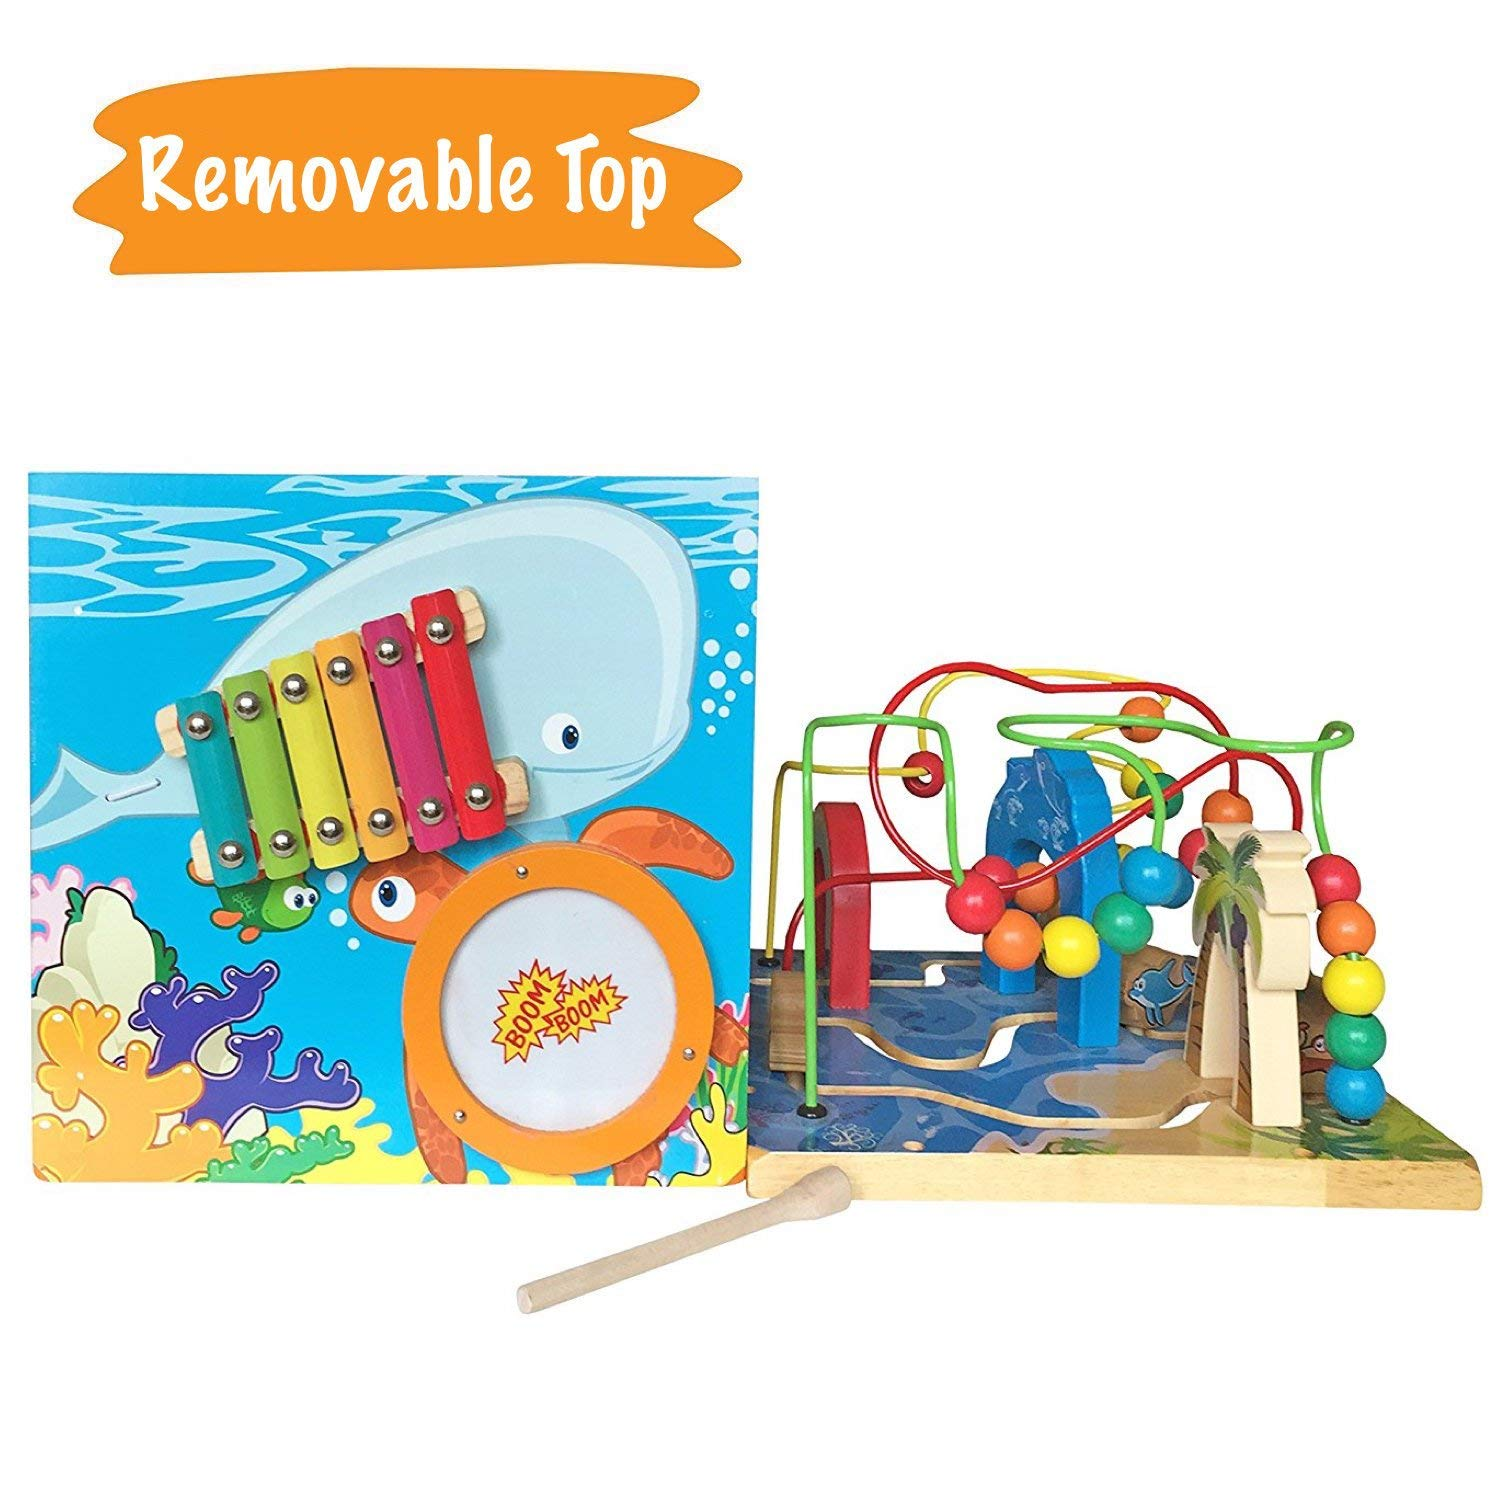 Under The Sea Adventures, Deluxe Activity Wooden Maze Cube - Perfect for Kids Play, Musical Activity, and Toddlers Early Developmental Skills by Pidoko Kids (Image #5)